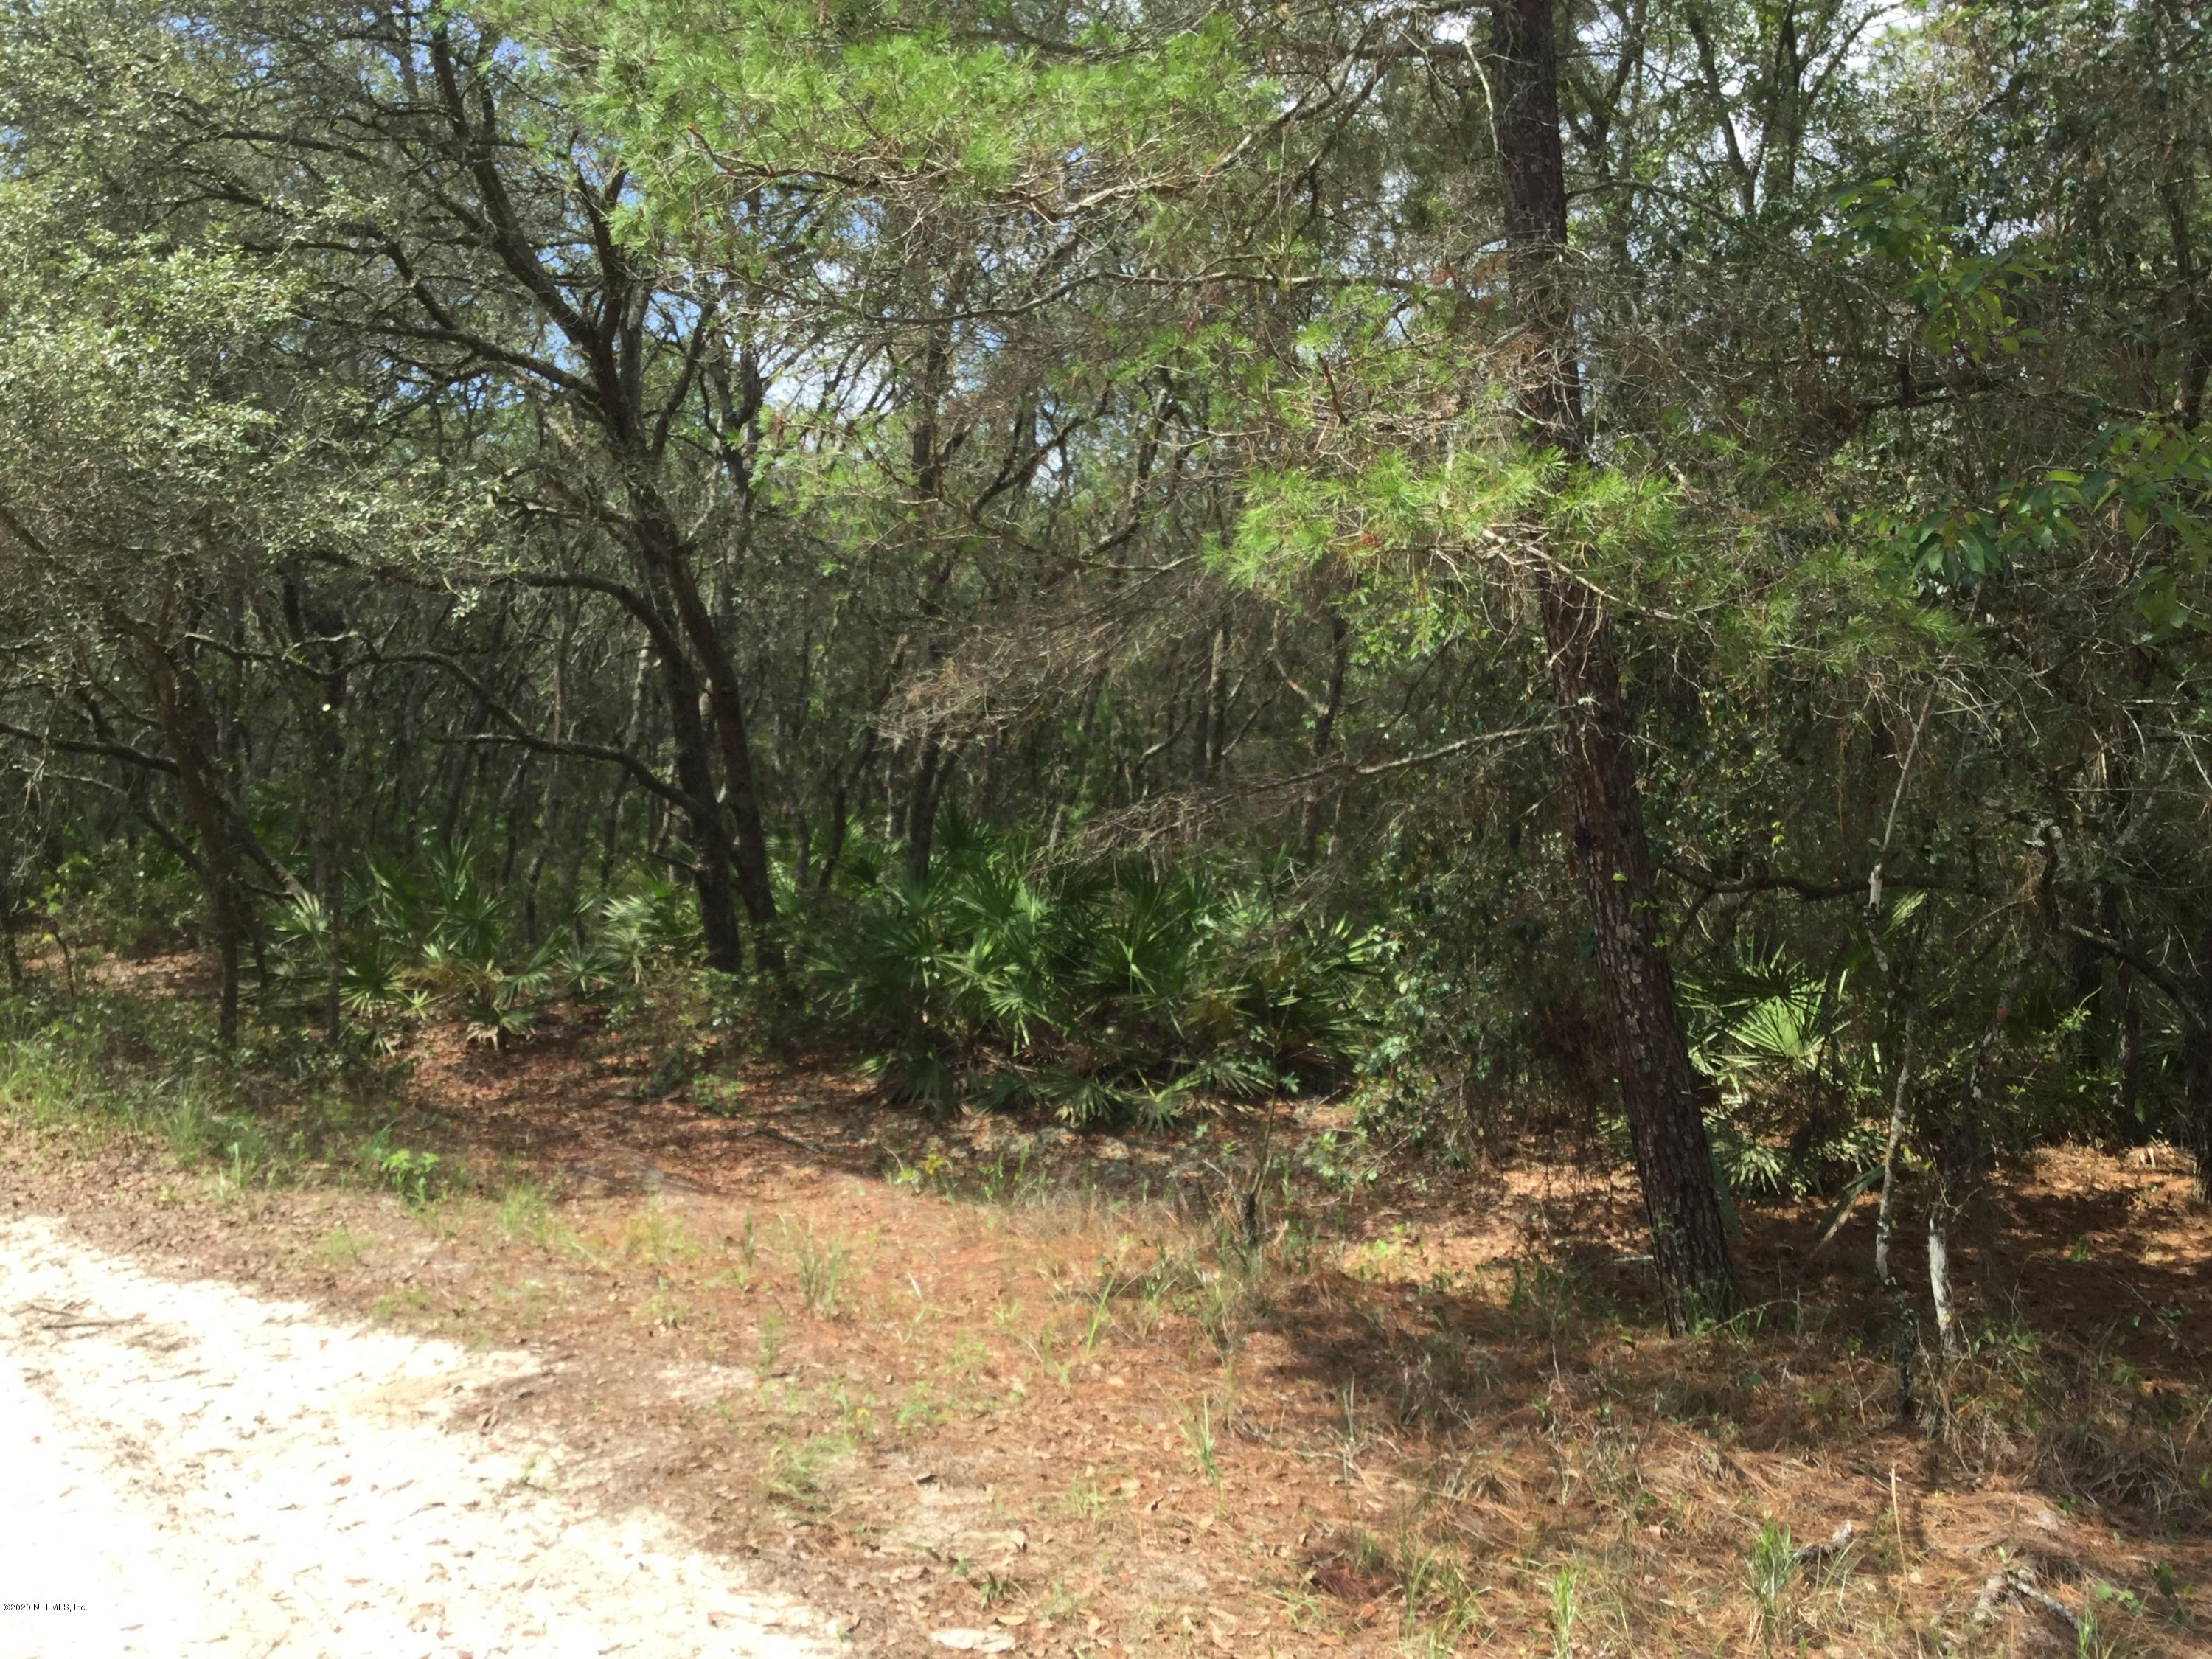 105 NEVADA, SATSUMA, FLORIDA 32189, ,Vacant land,For sale,NEVADA,1059064